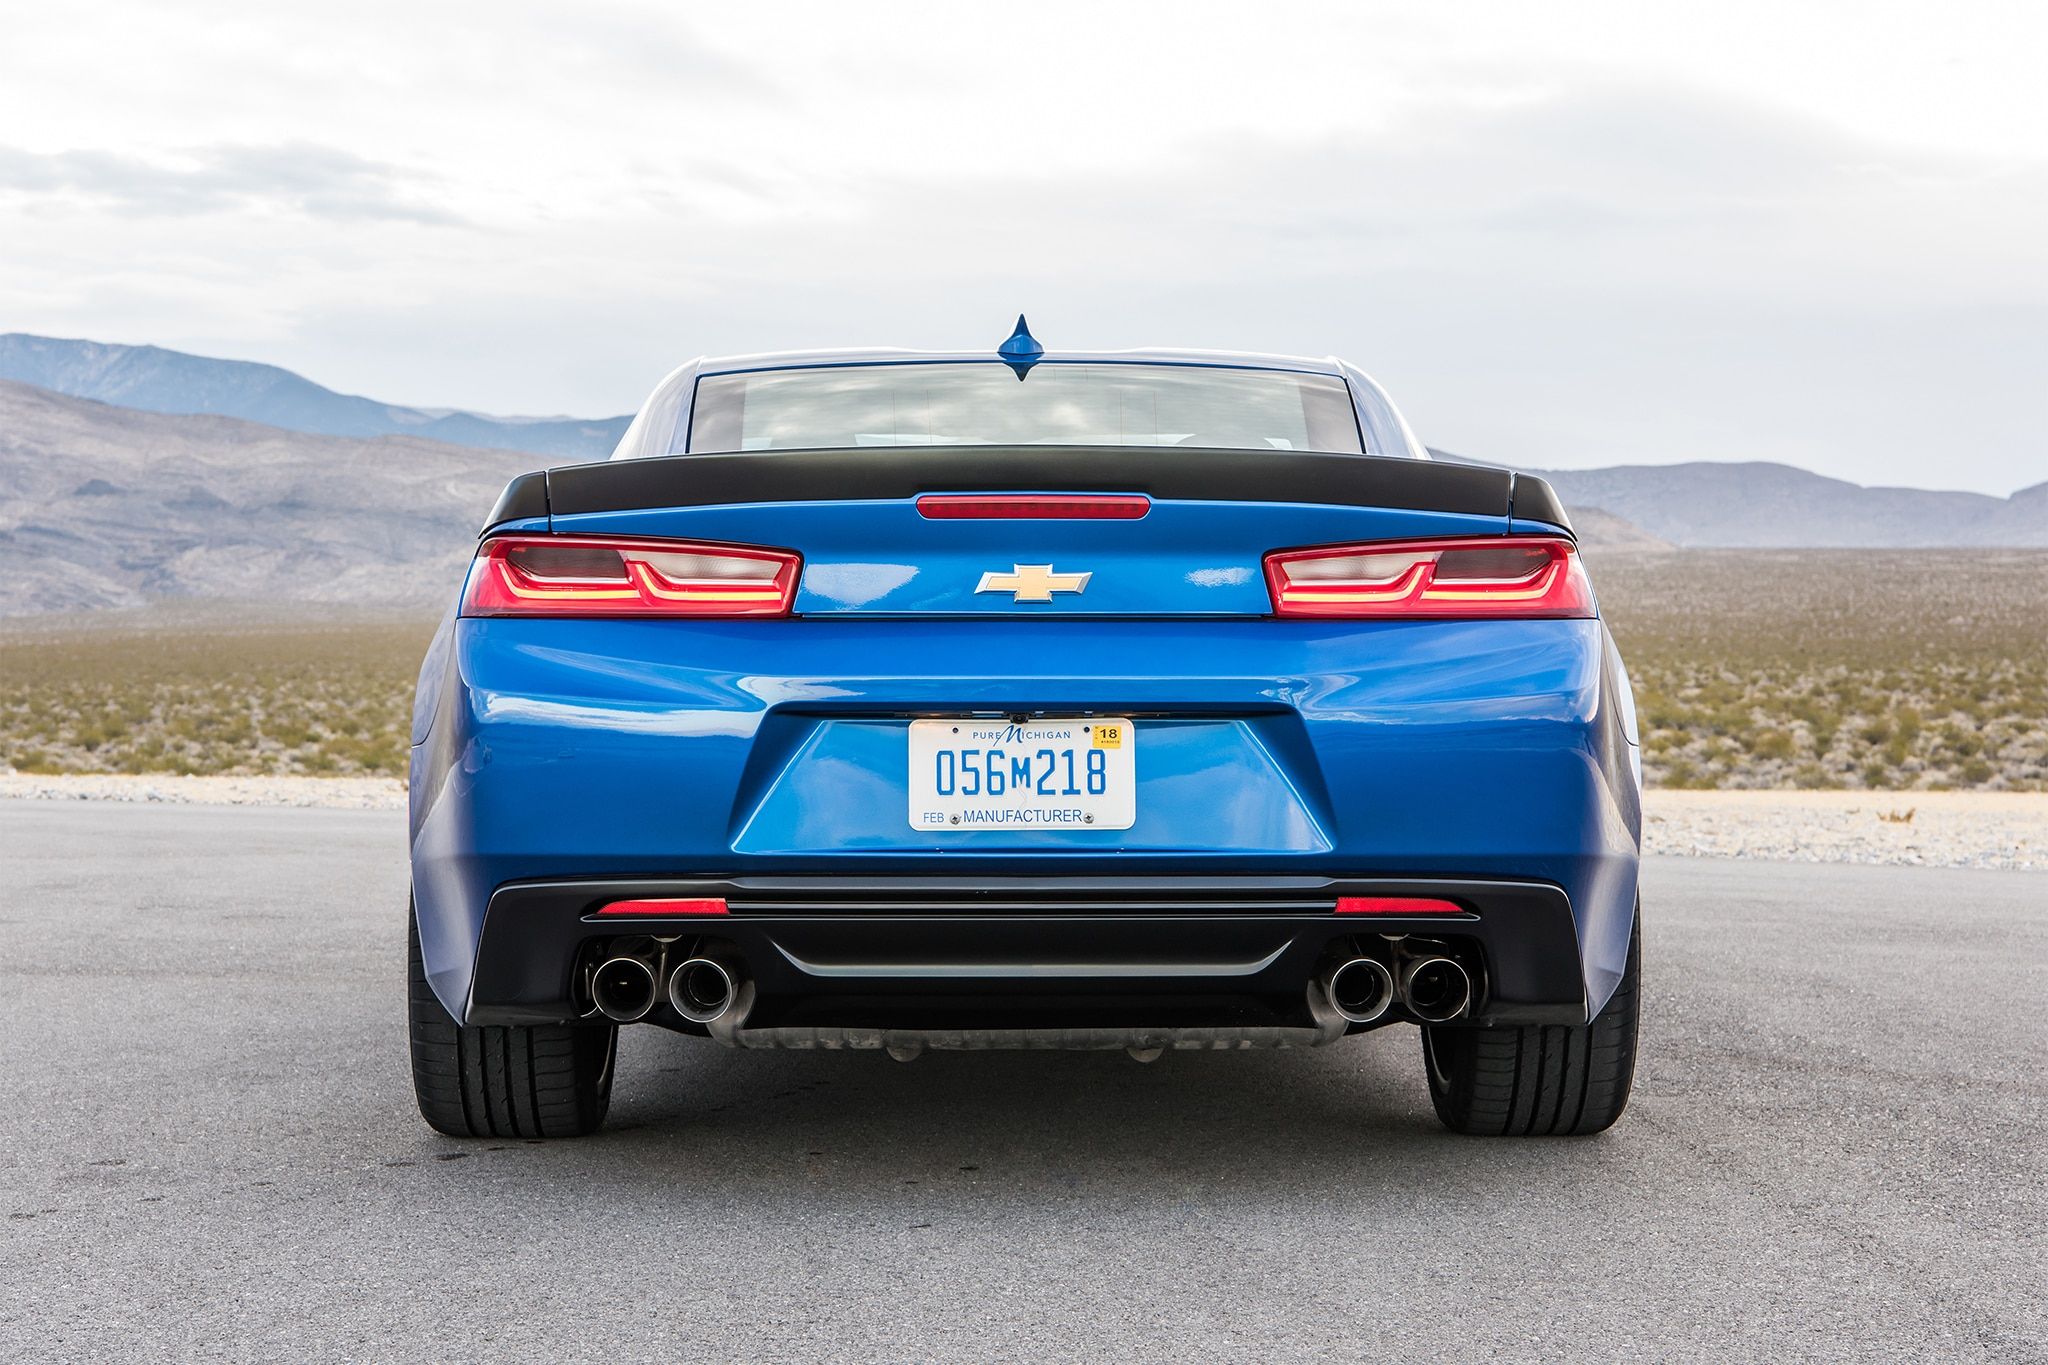 2017 Chevrolet Camaro V 6 1LE rear view 2017 chevrolet camaro v 6 1le first drive review automobile magazine  at bayanpartner.co